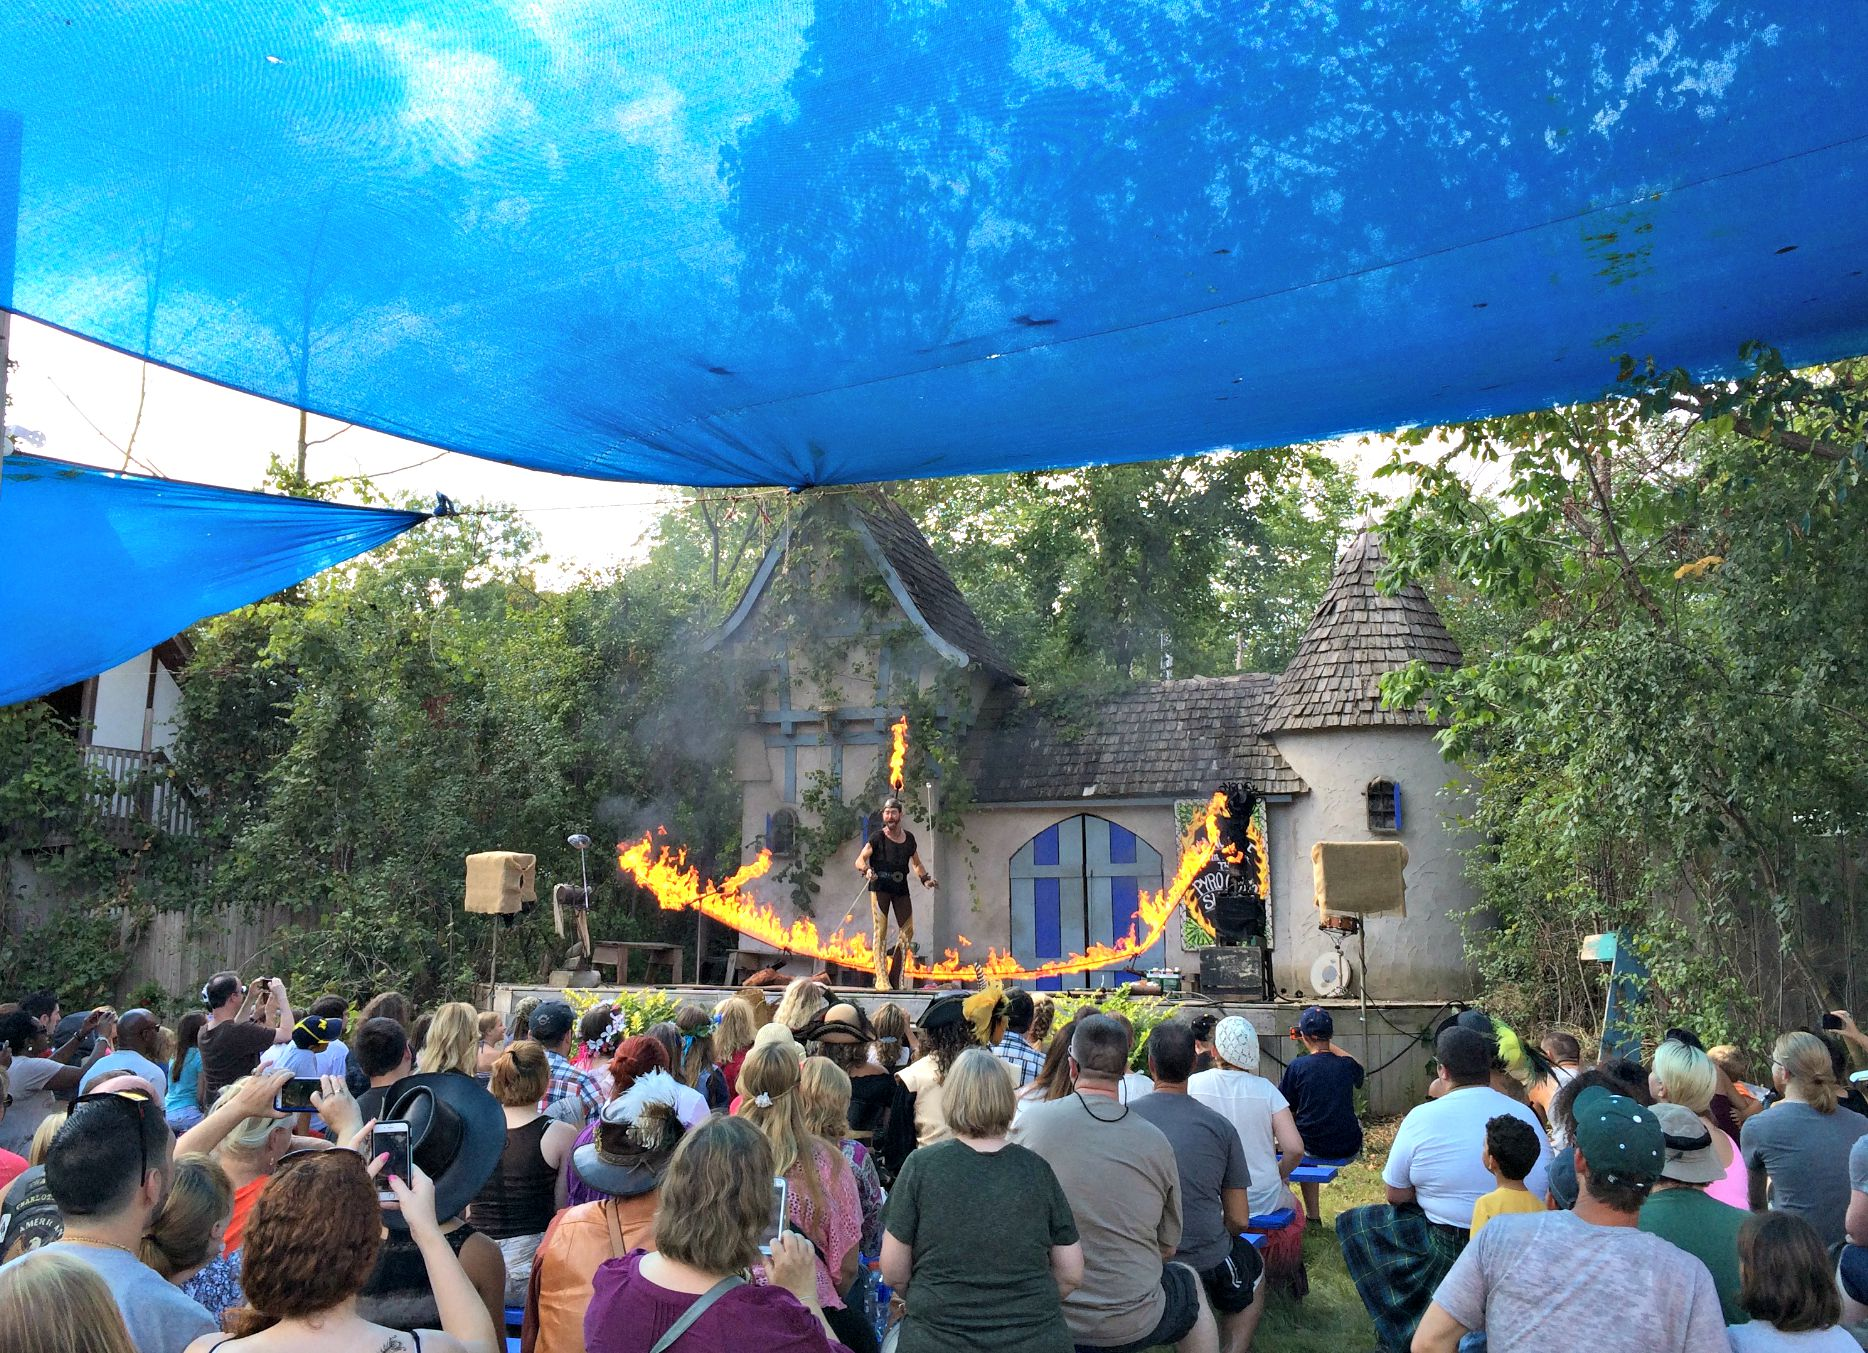 Renaissance Festival shows